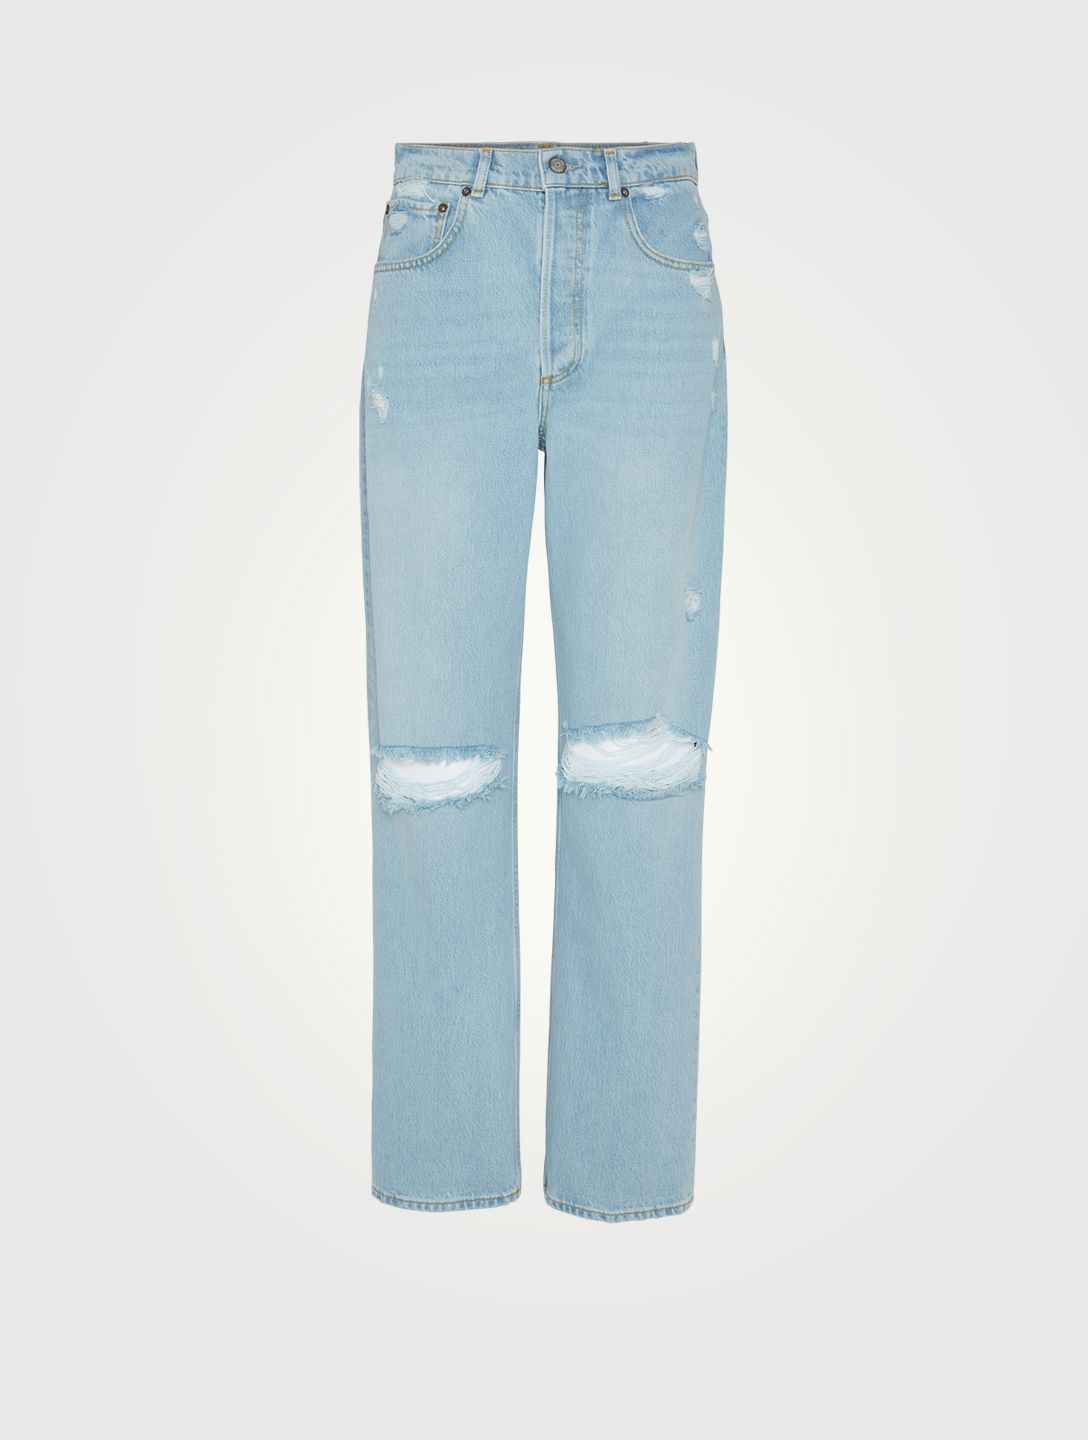 BOYISH Ziggy High-Waisted Straight-Leg Jeans Women's Blue